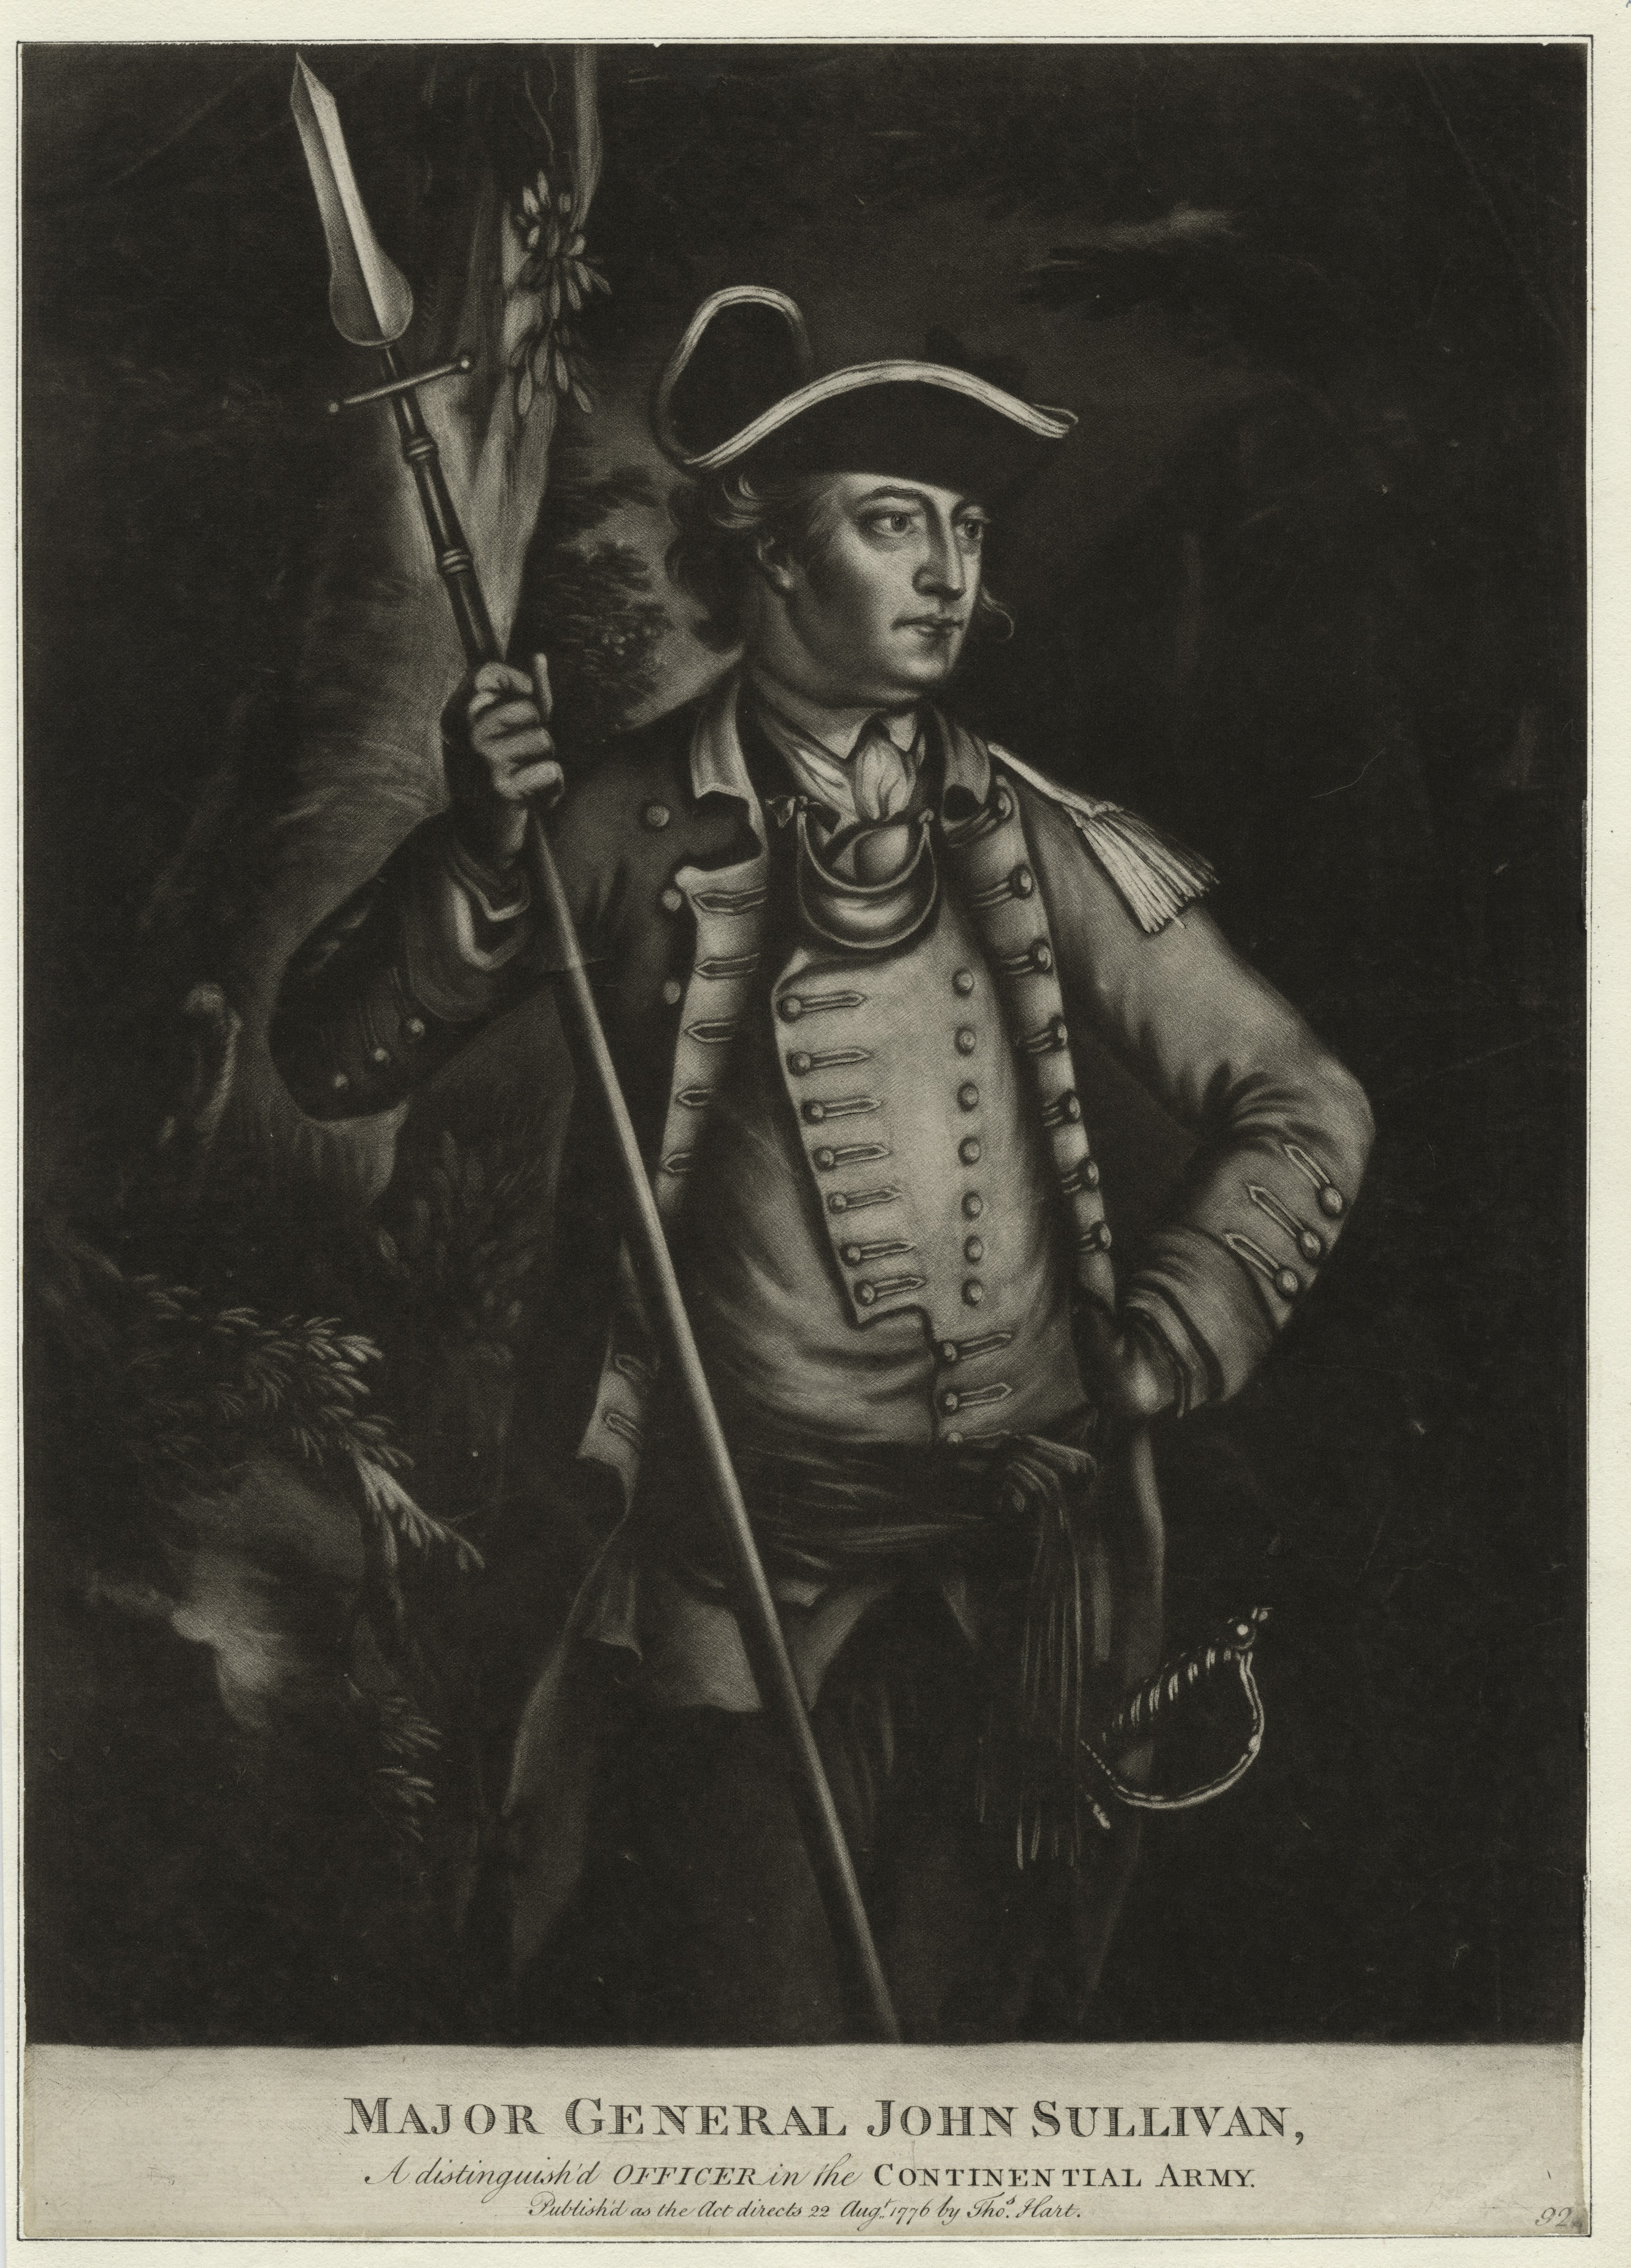 Major General John Sullivan, a distinguished officer in the Continental Army. Printmakers include Asher B. Durand, Henry Bryan Hall, Albert Rosenthal and Max Rosenthal. Draughtsmen include David McNeely Stauffer (NYPL NYPG94-F149-419970)